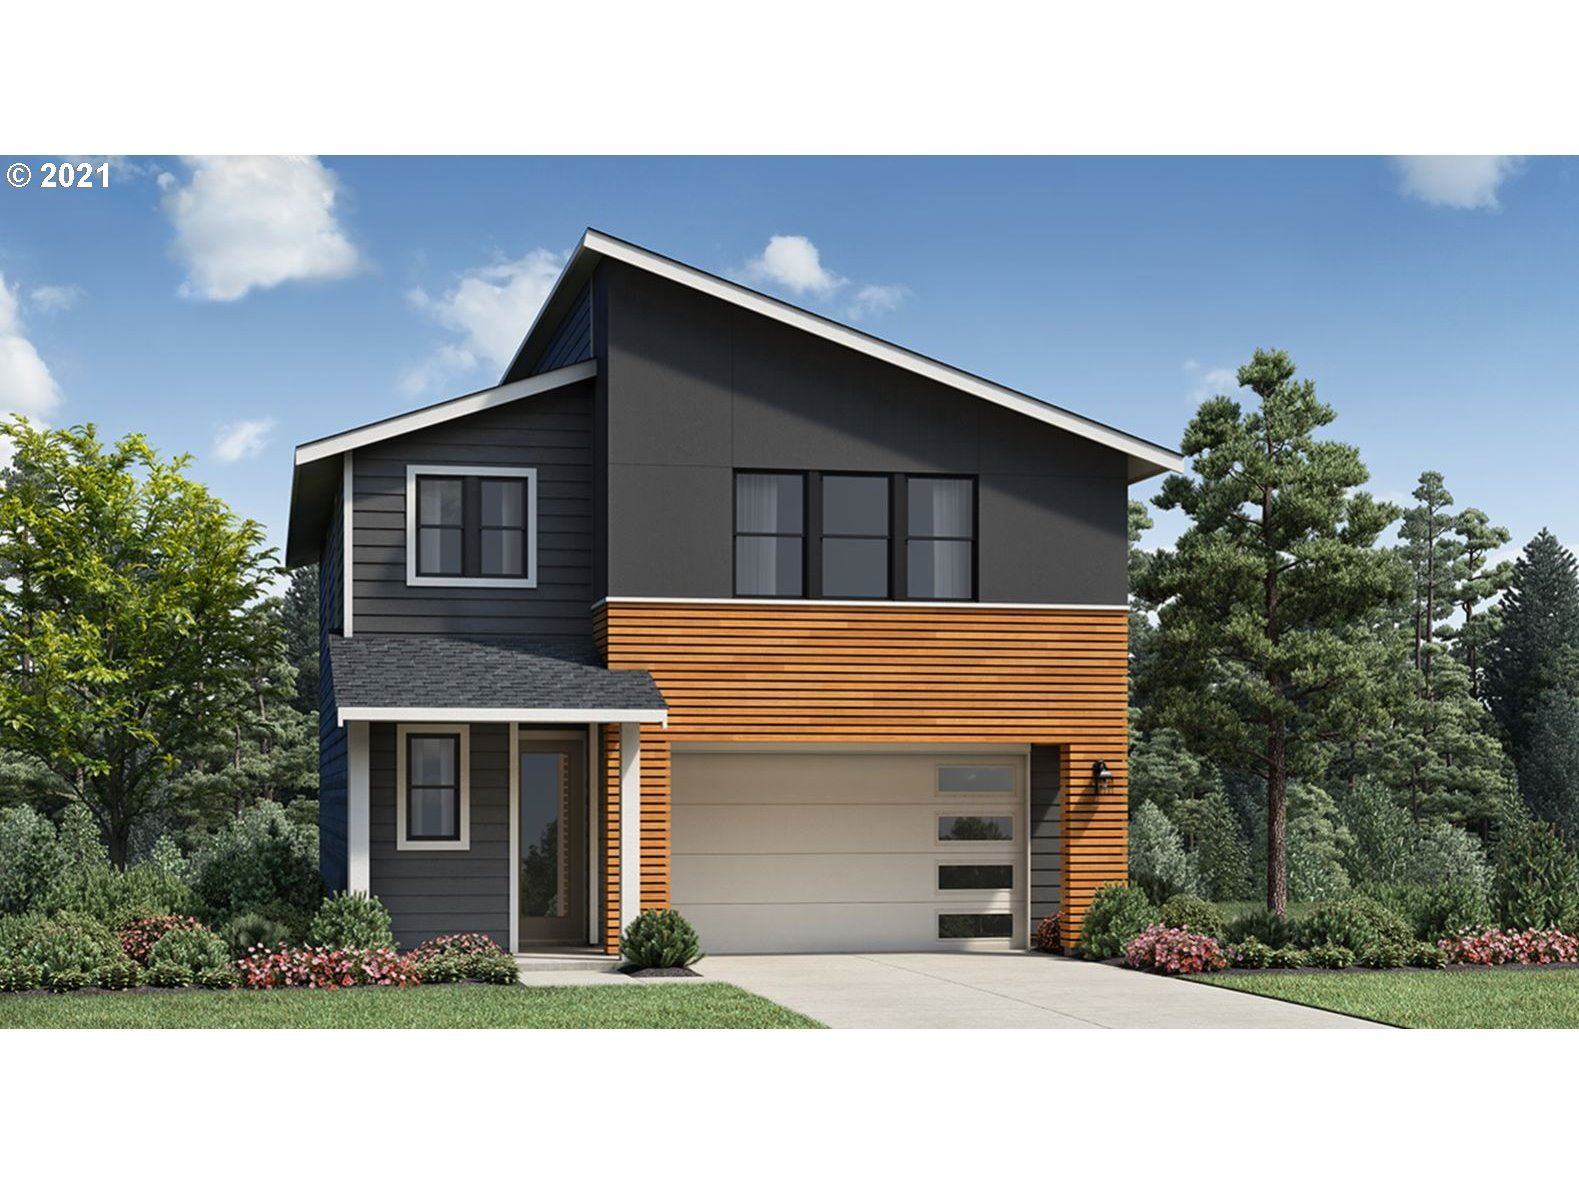 1402 NW 116TH AVE, Portland, OR 97229 - MLS#: 21268520